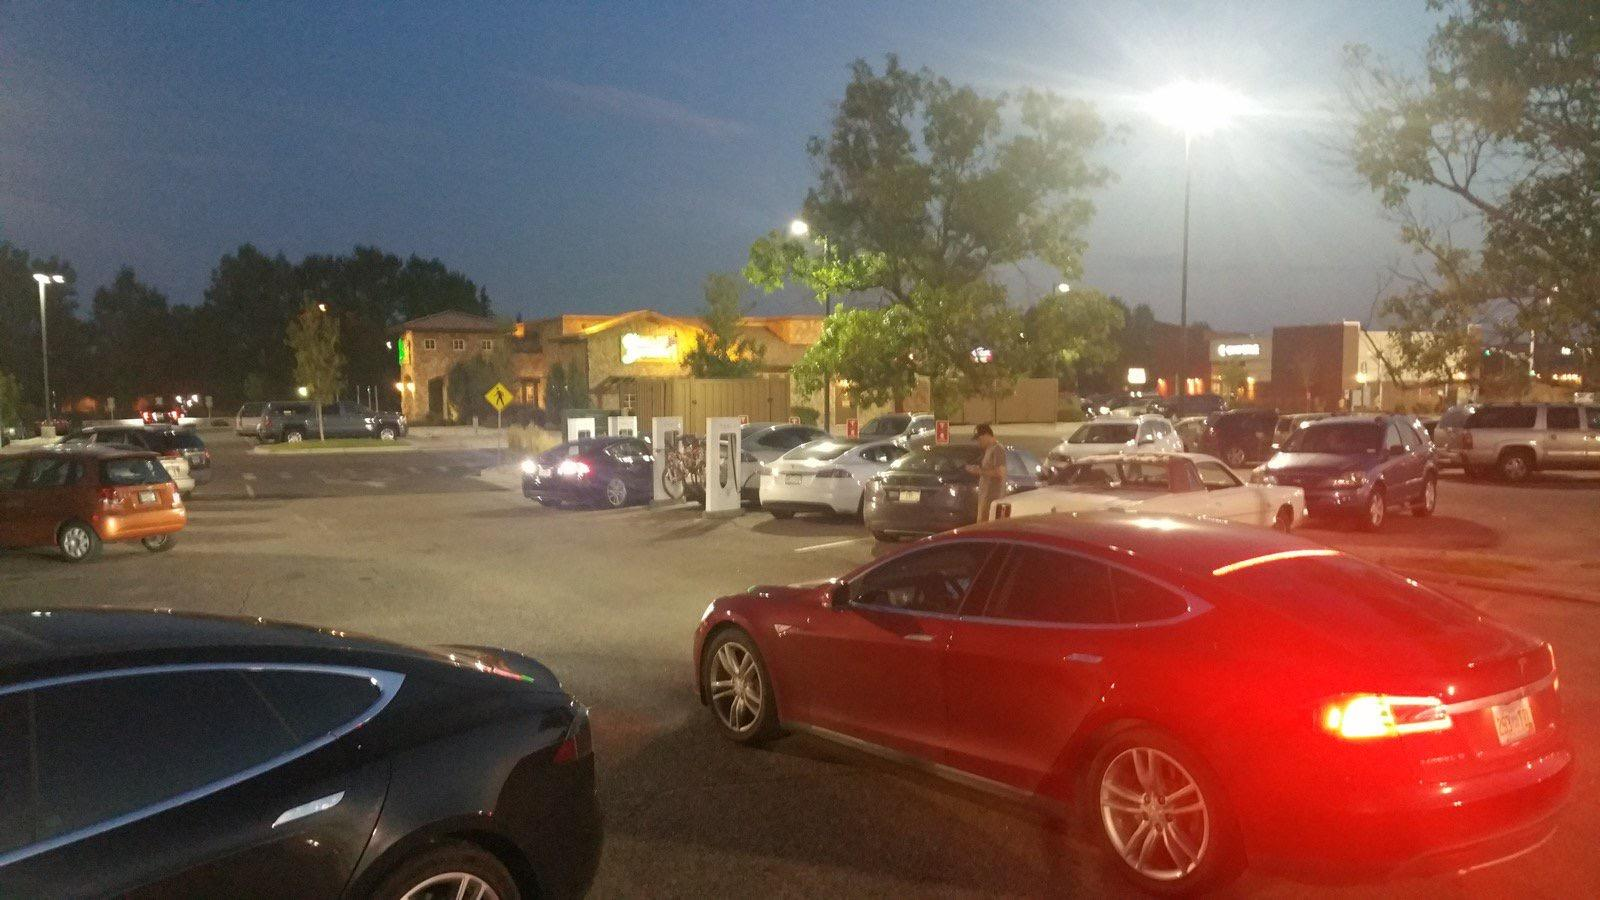 Cheyenne Supercharger - Free DC Fast Electric Car Charging - 140 ...